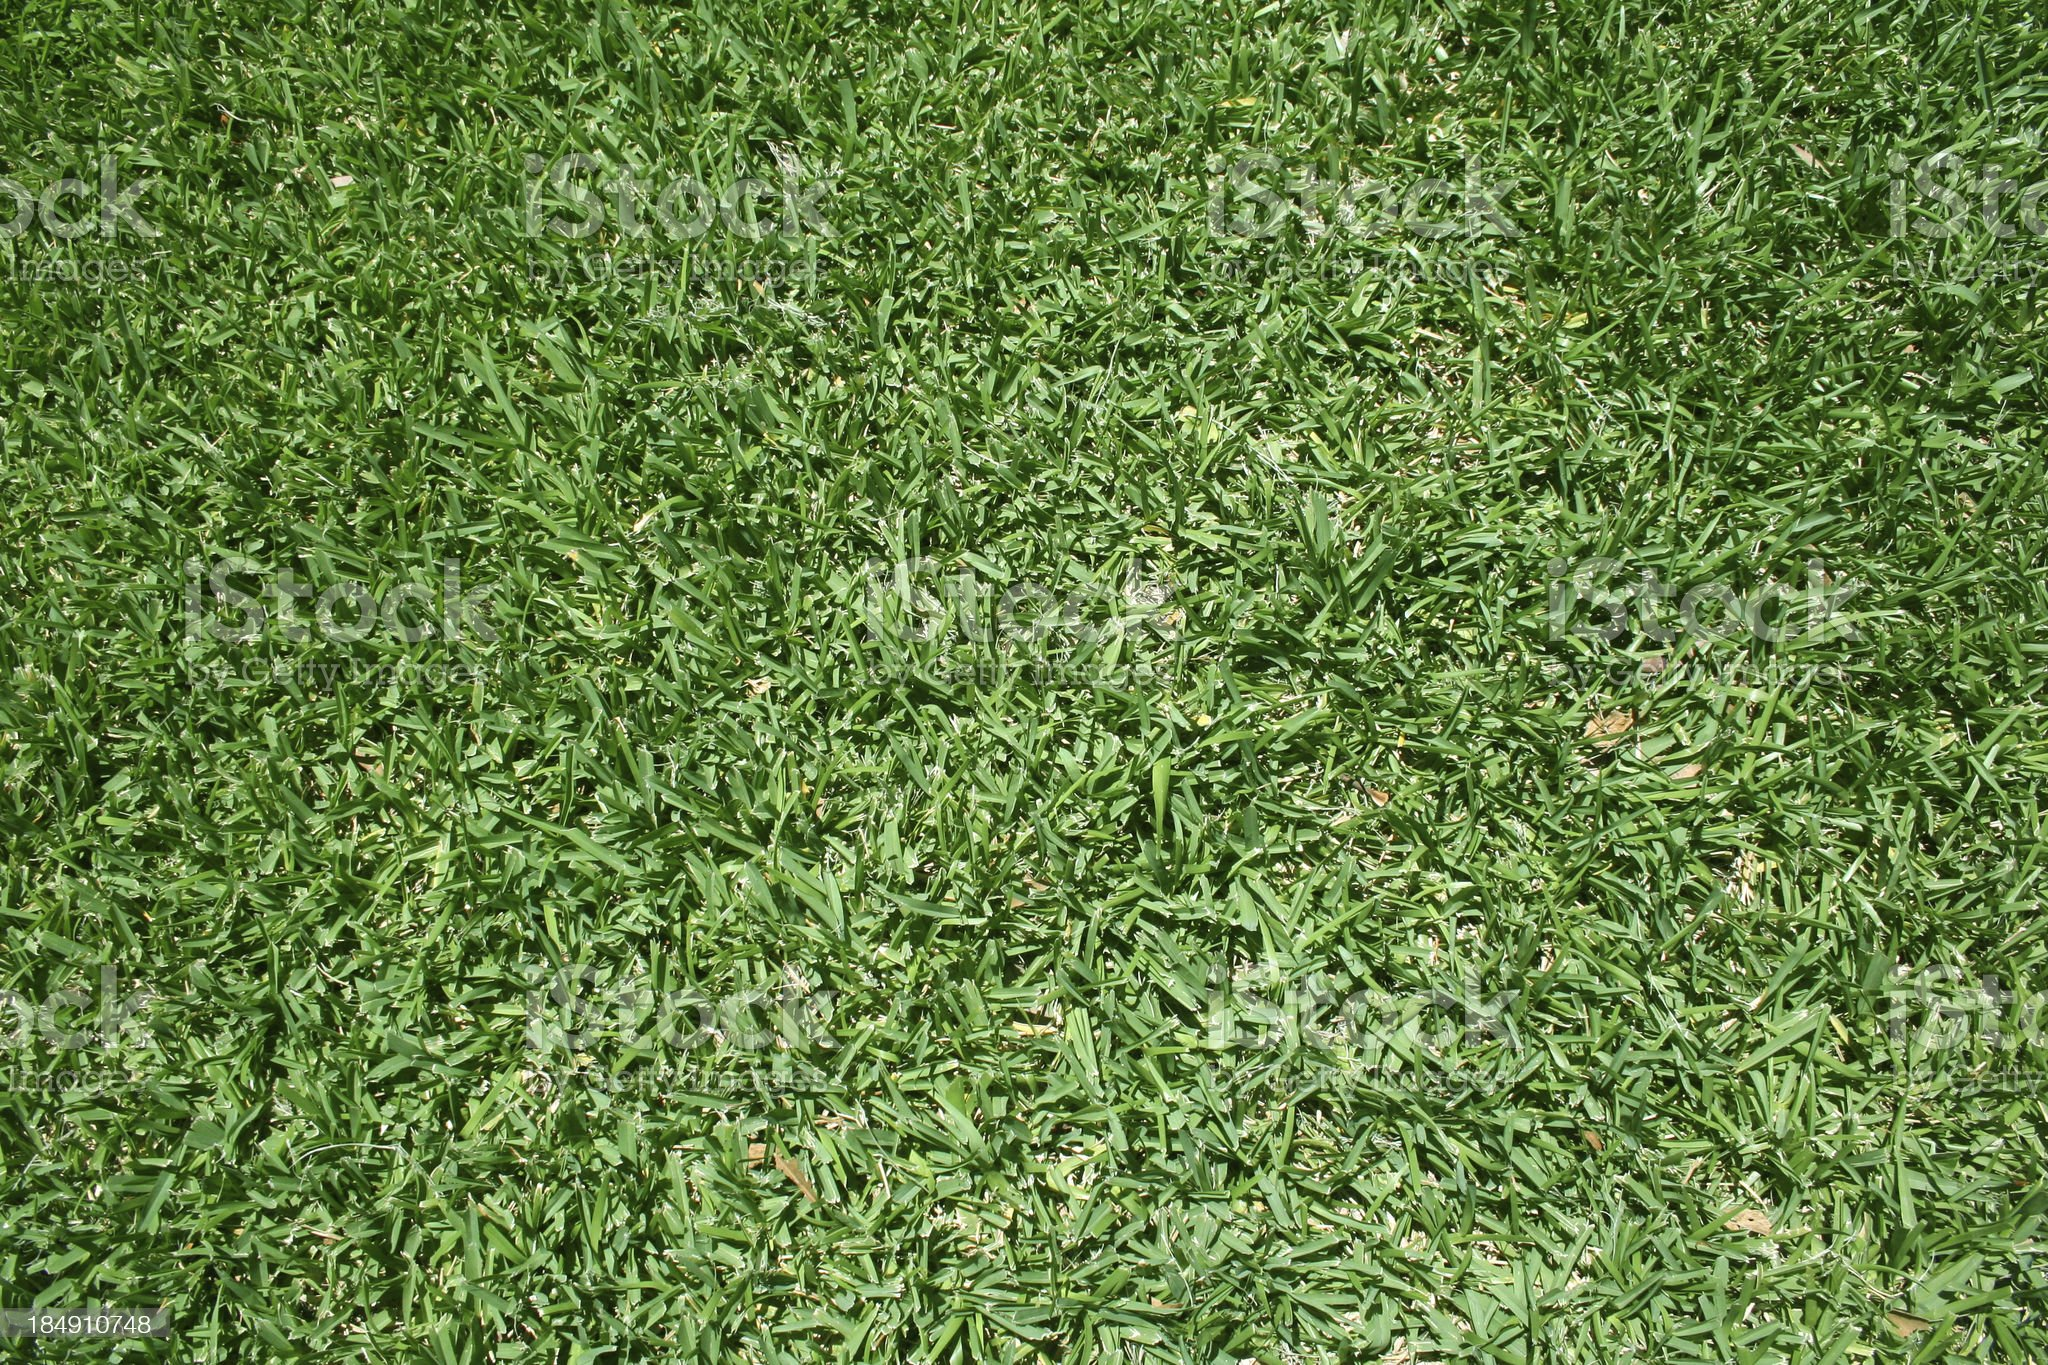 New Green Grass background royalty-free stock photo